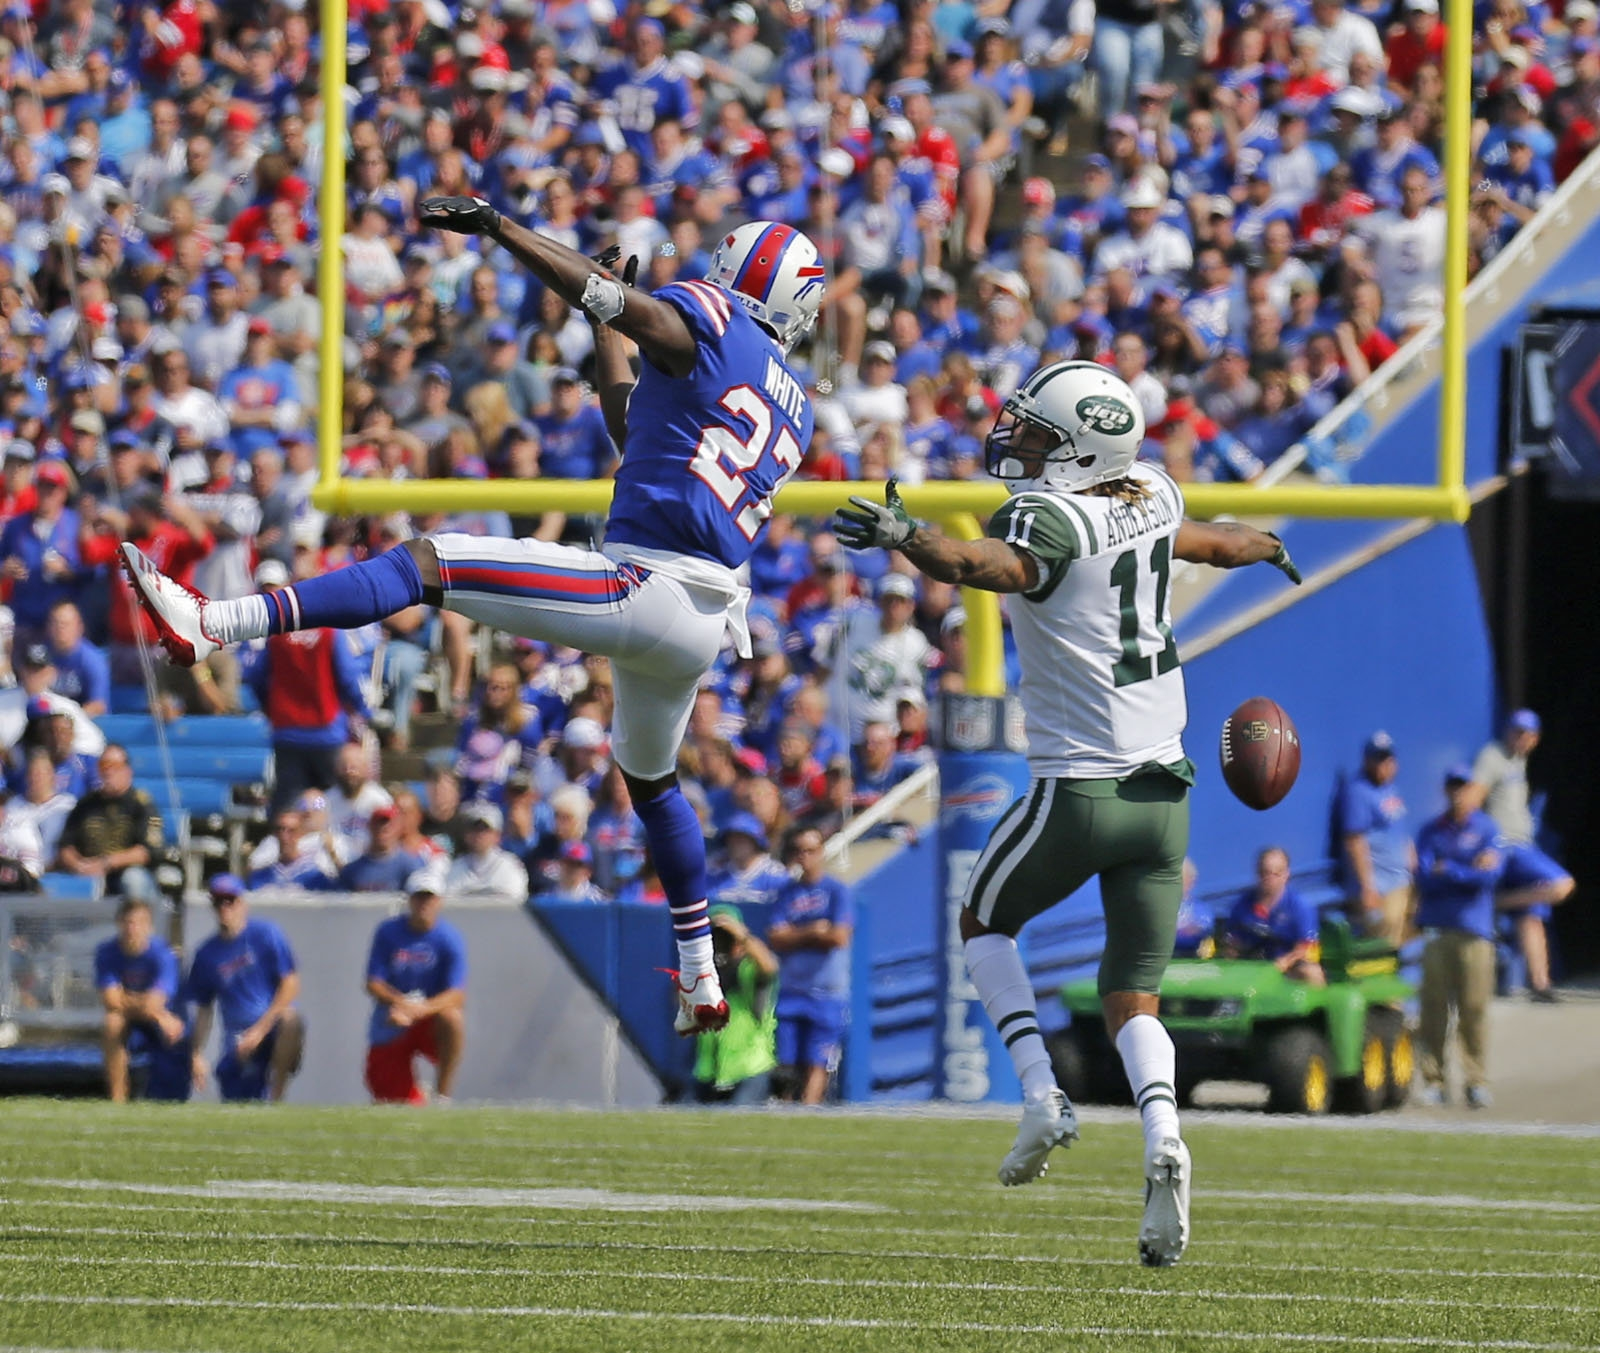 Buffalo's Tre'Davious White gets in Jets' receiver Robby Anderson's face enough to break up his focus for a dropped pass.